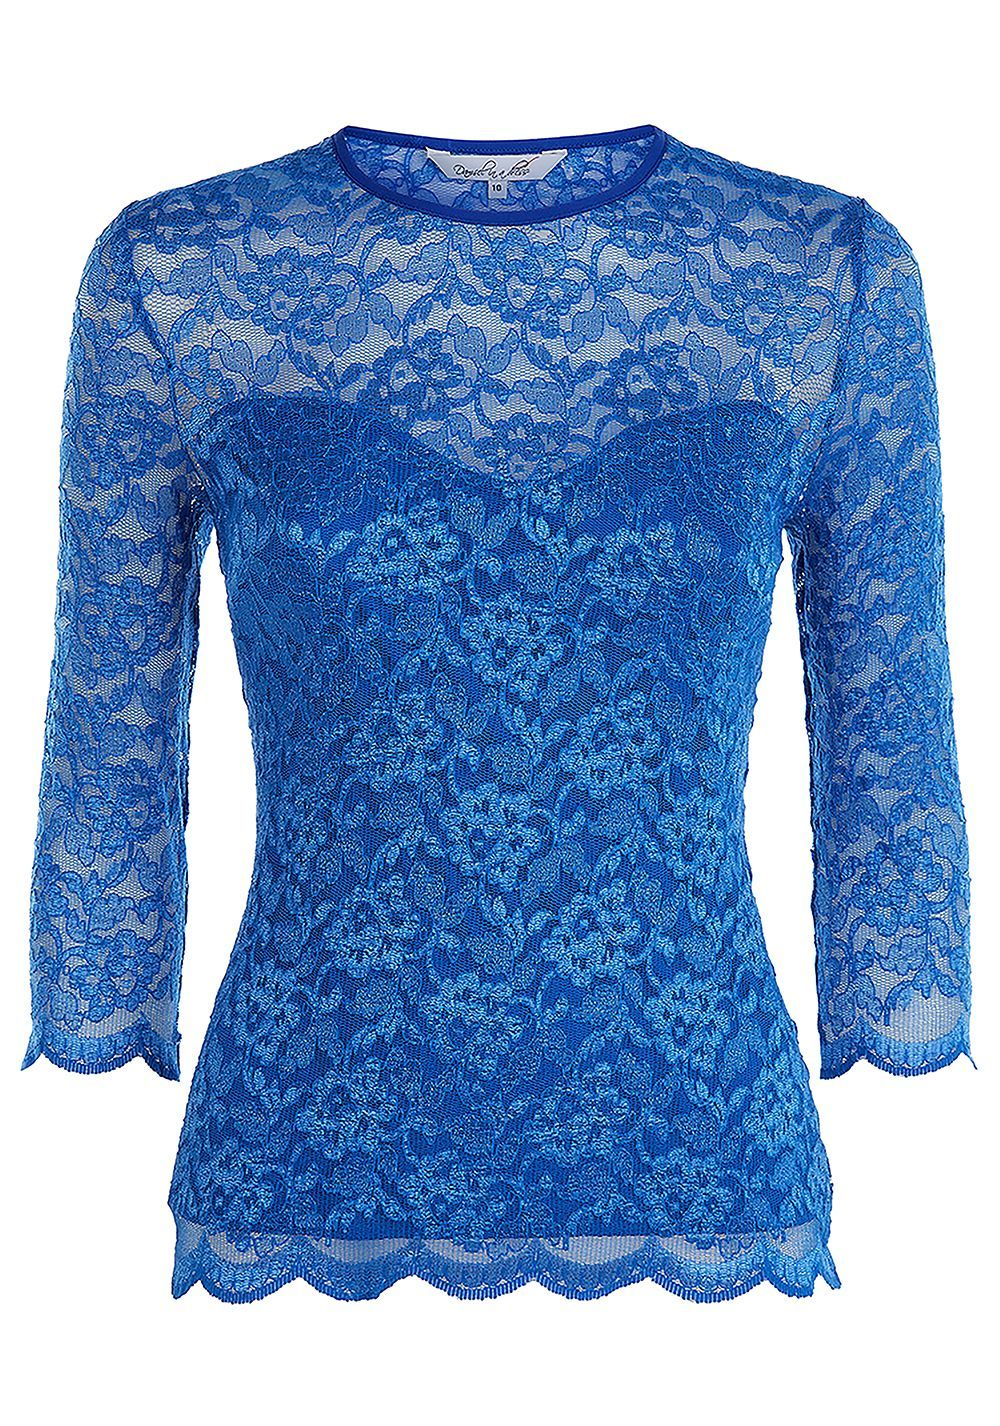 Bern Lace Top, Blue - neckline: round neck; style: t-shirt; predominant colour: diva blue; occasions: evening; length: standard; fibres: polyester/polyamide - mix; fit: body skimming; sleeve length: short sleeve; sleeve style: standard; texture group: lace; pattern type: fabric; pattern size: standard; pattern: patterned/print; embellishment: lace; season: s/s 2016; wardrobe: event